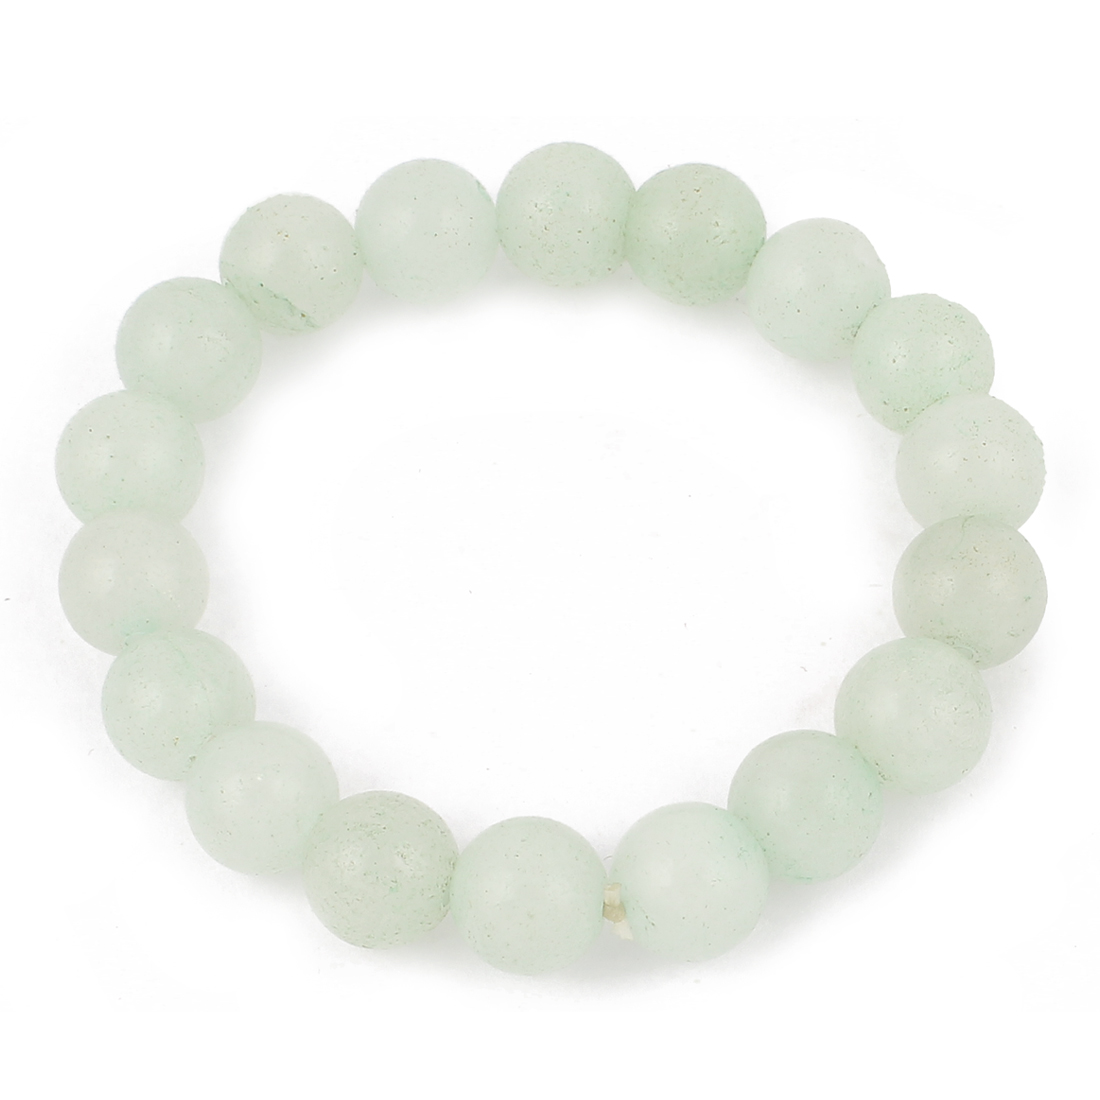 Lady Women Faux Jade Beads Decor Elastic Wrist Bangle Bracelet Pale Green